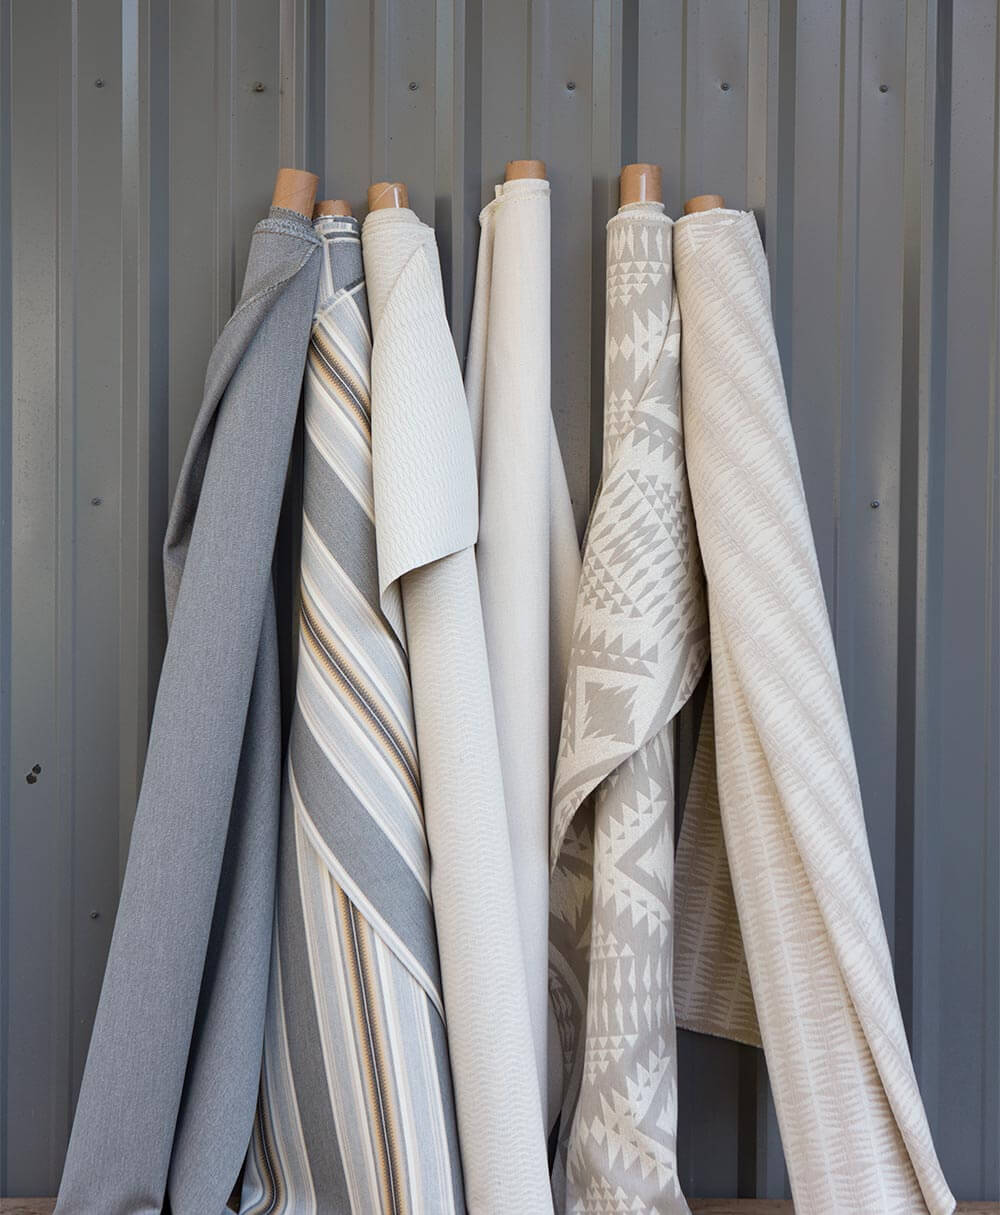 Rolls of neutral patterned Pendleton by Sunbrella upholstery fabrics lean against the wall.